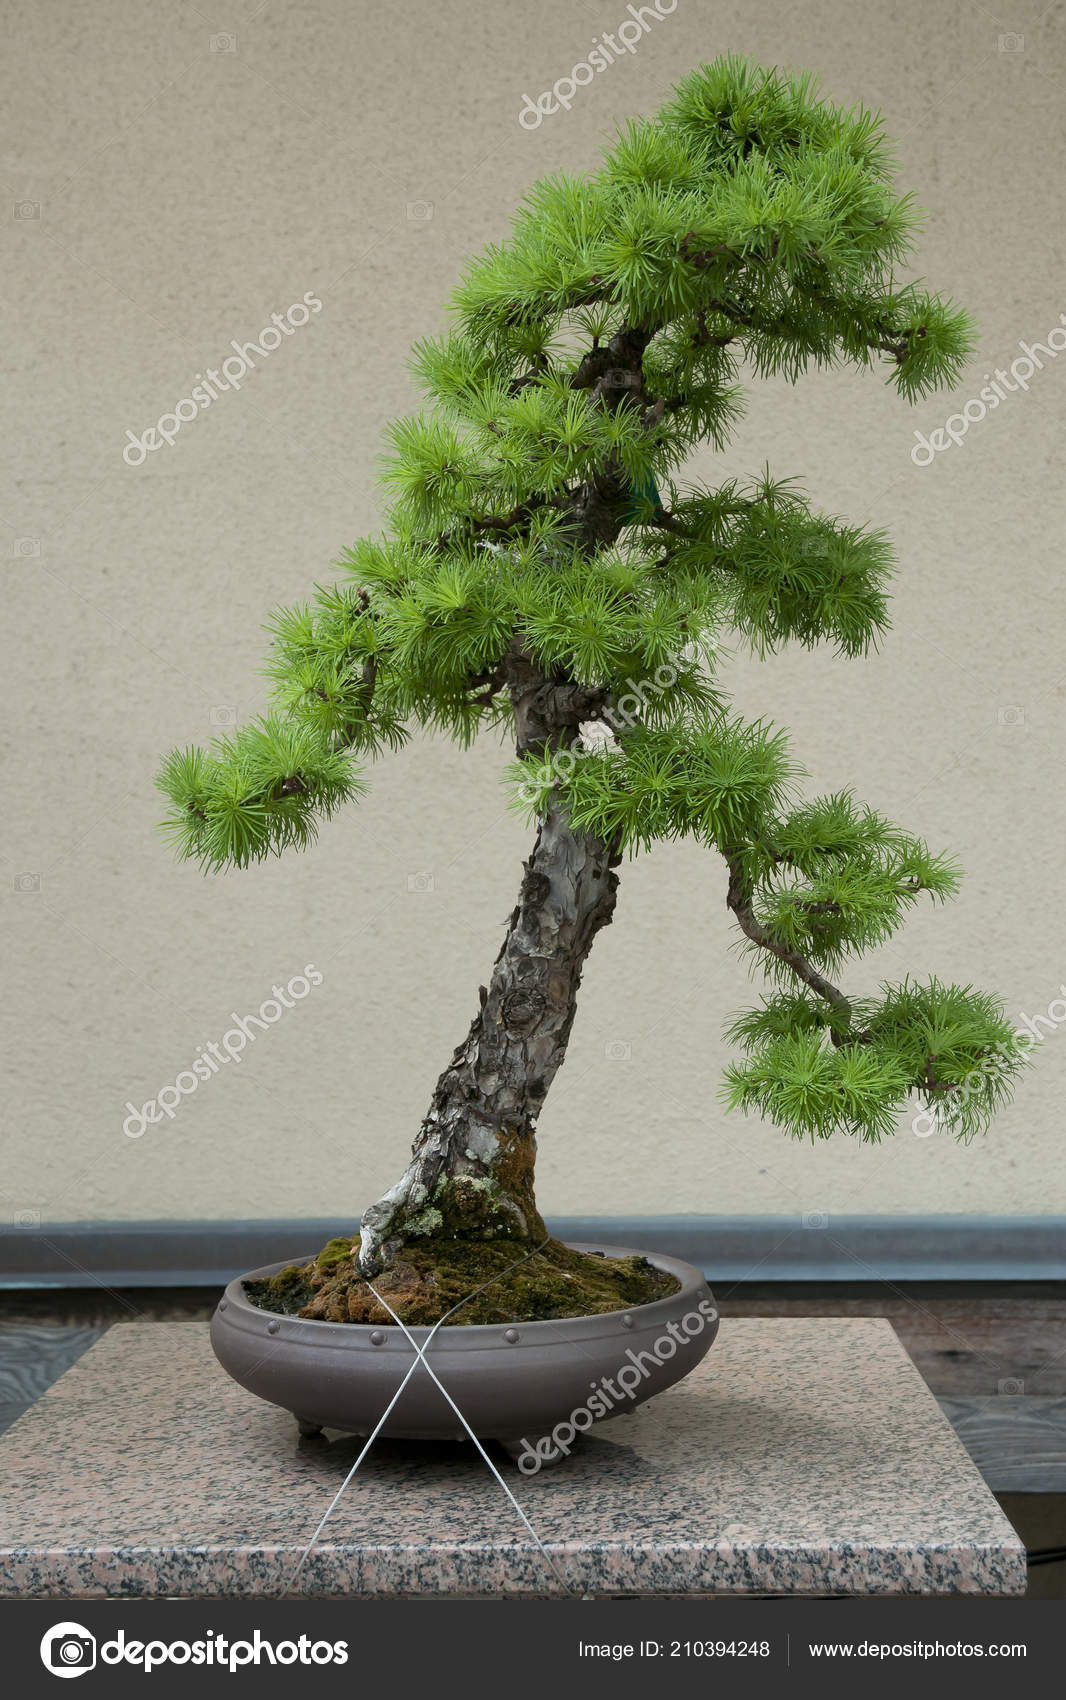 Japanese Larch Bonsai Tree Years Old Stock Photo C Adwo Hotmail Com 210394248